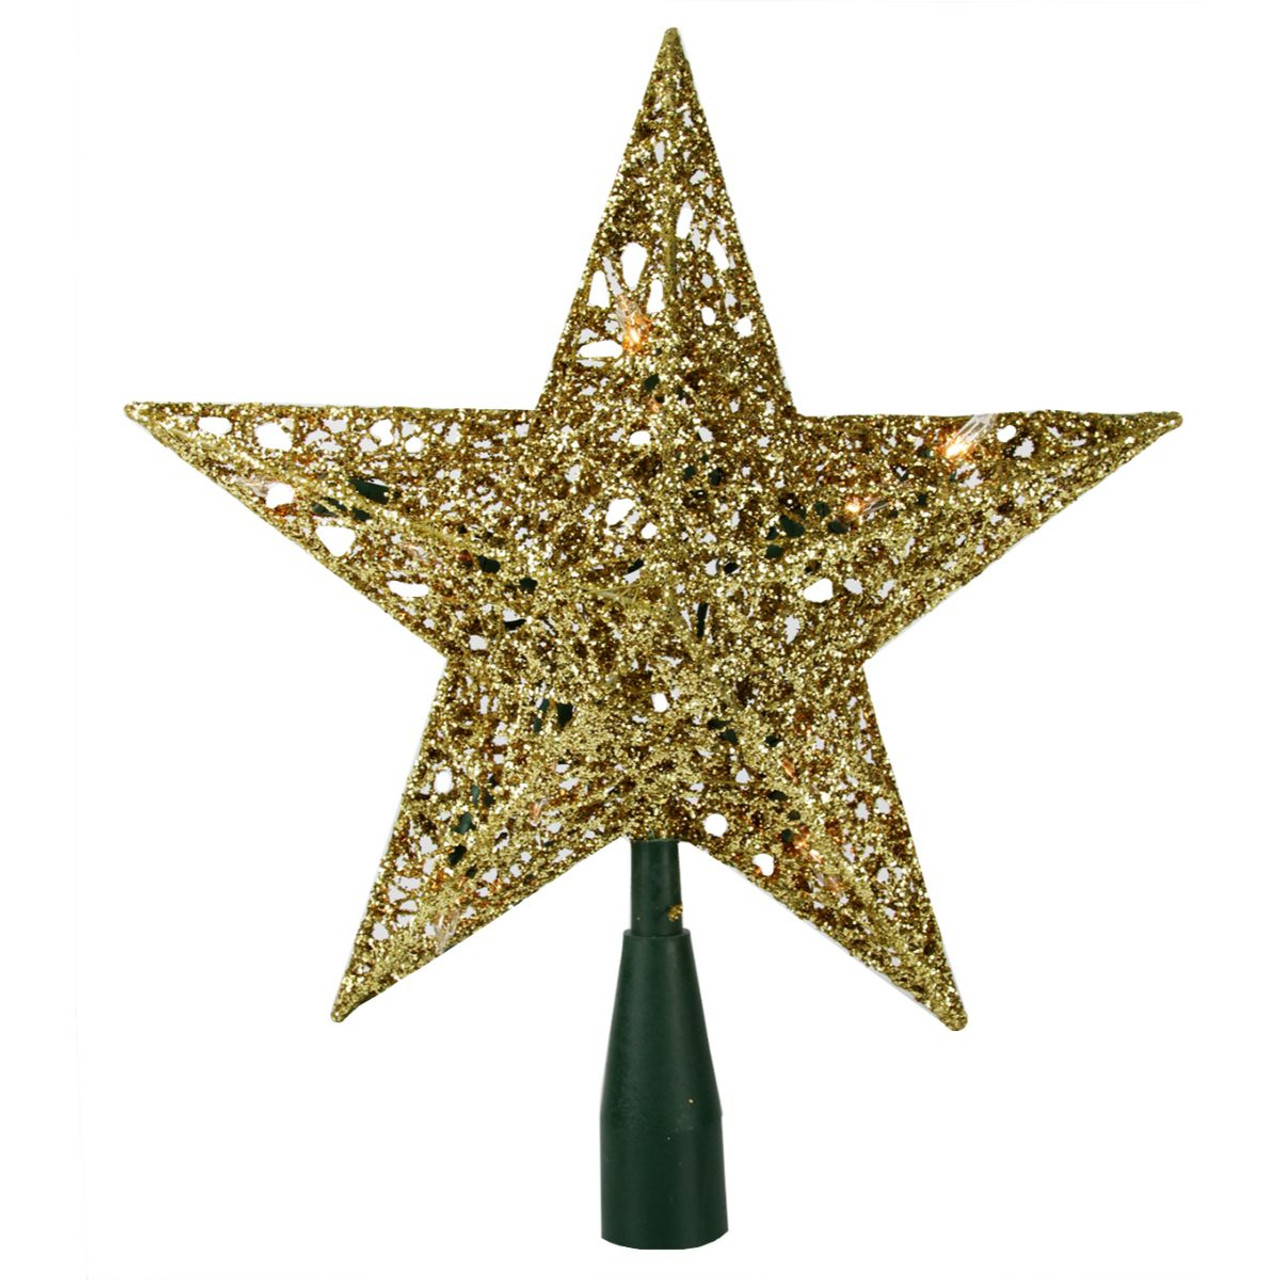 "Star For A Christmas Tree: 9"" Lighted Gold Wire Star Christmas Tree Topper"